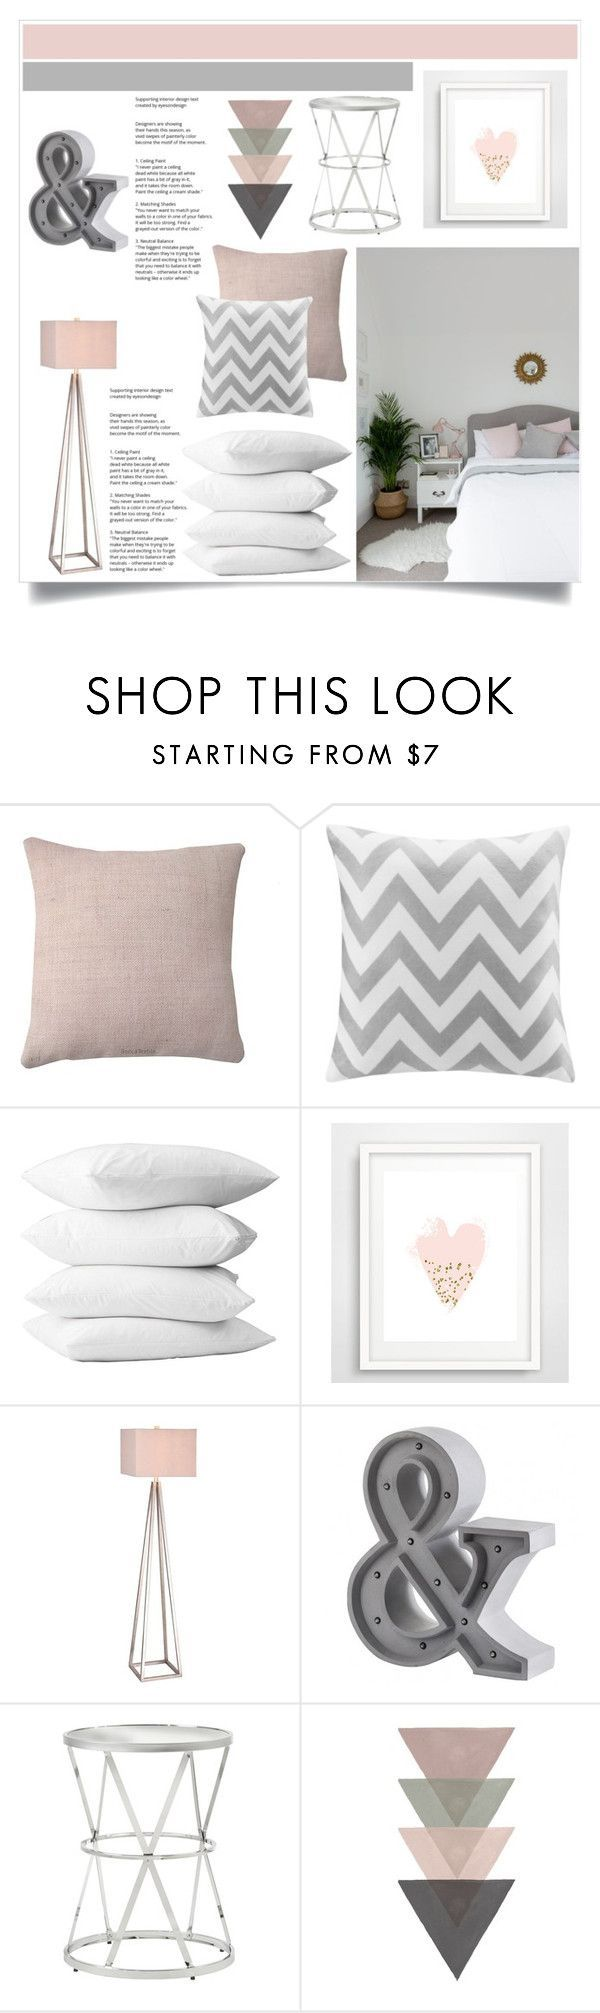 """Home Decor"" by silvia-pbx ❤ liked on Polyvore featuring interior, interiors, interior design, home, home decor, interior decorating, Intelligent Design, JAlexander and Inspire Q"